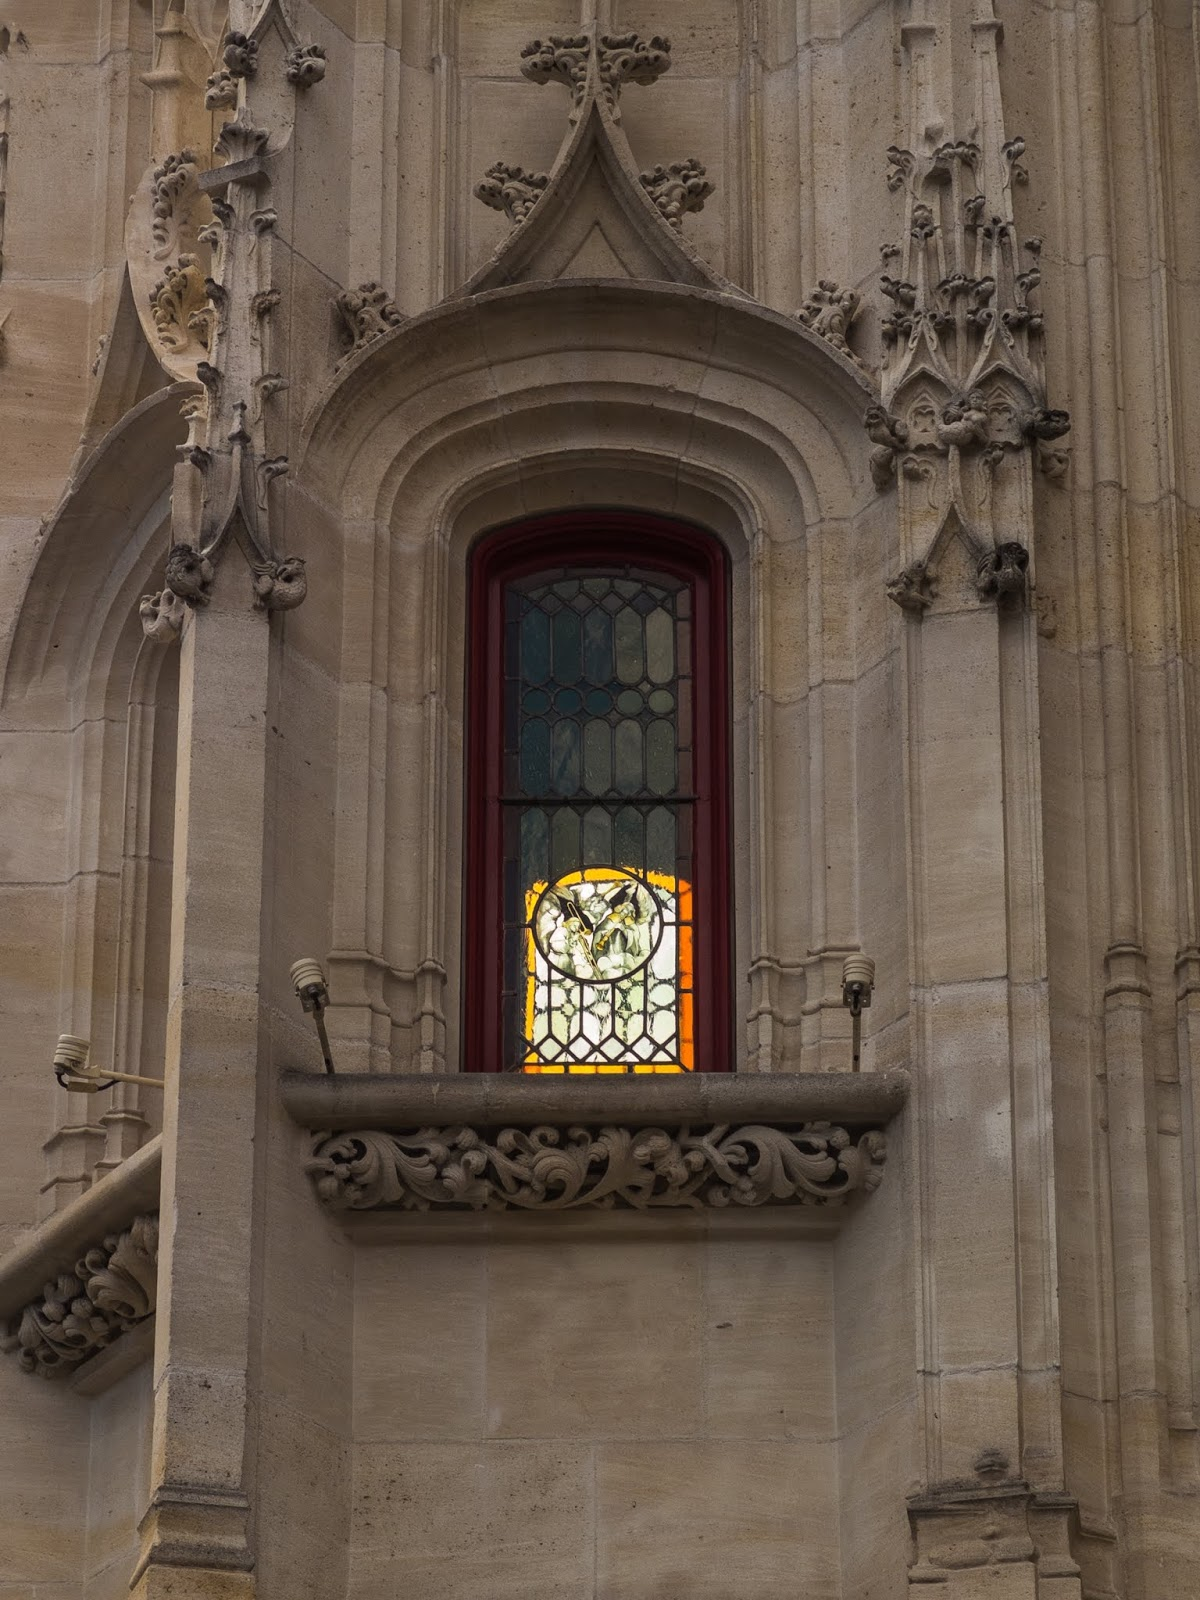 A red window in a tower in Rouen, Normandy, France.